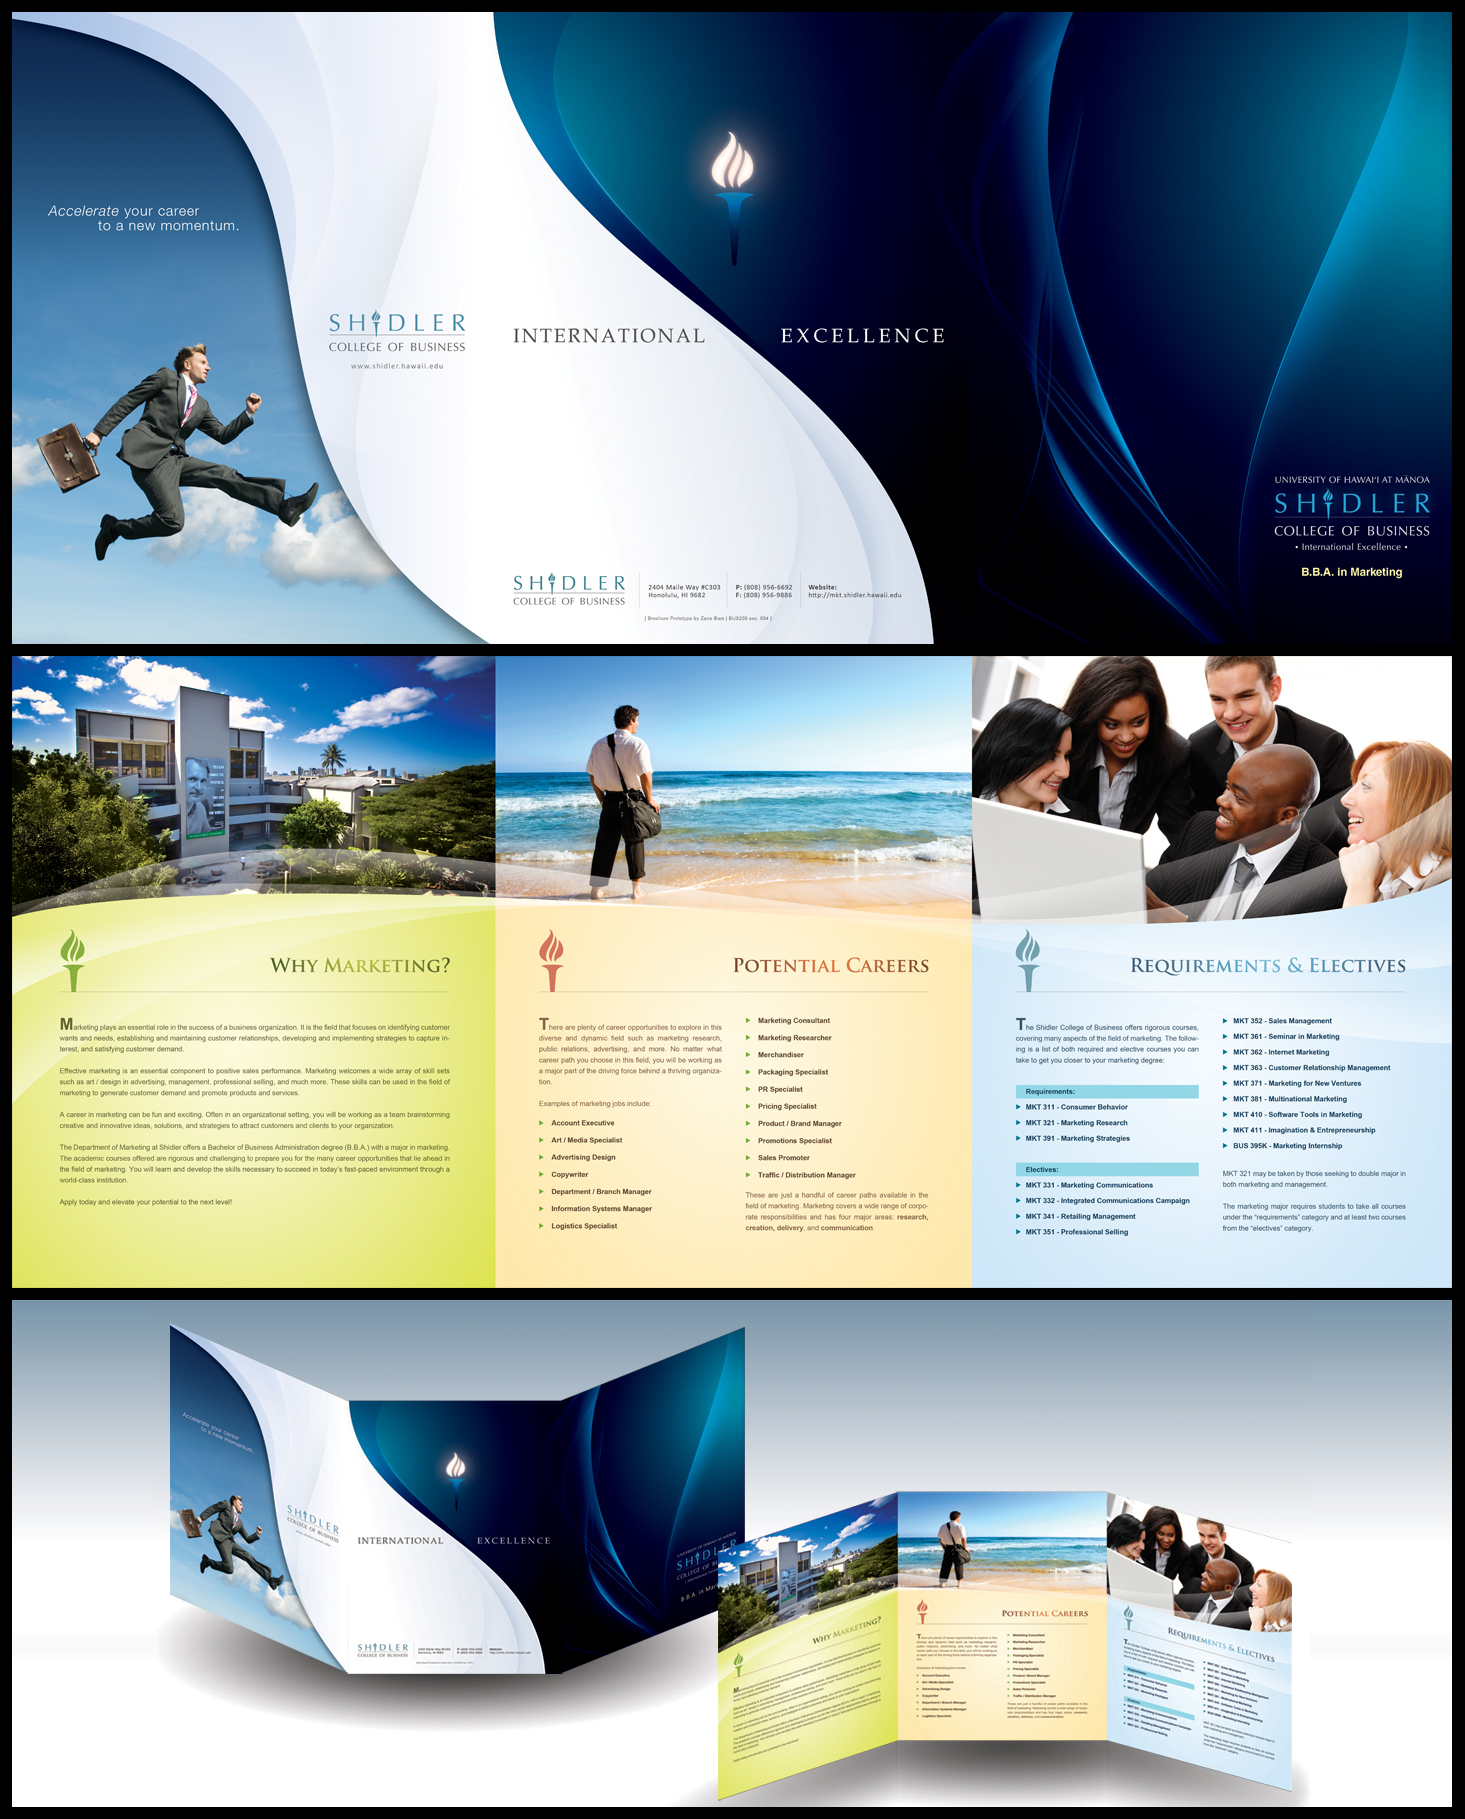 Shidler Marketing Brochure